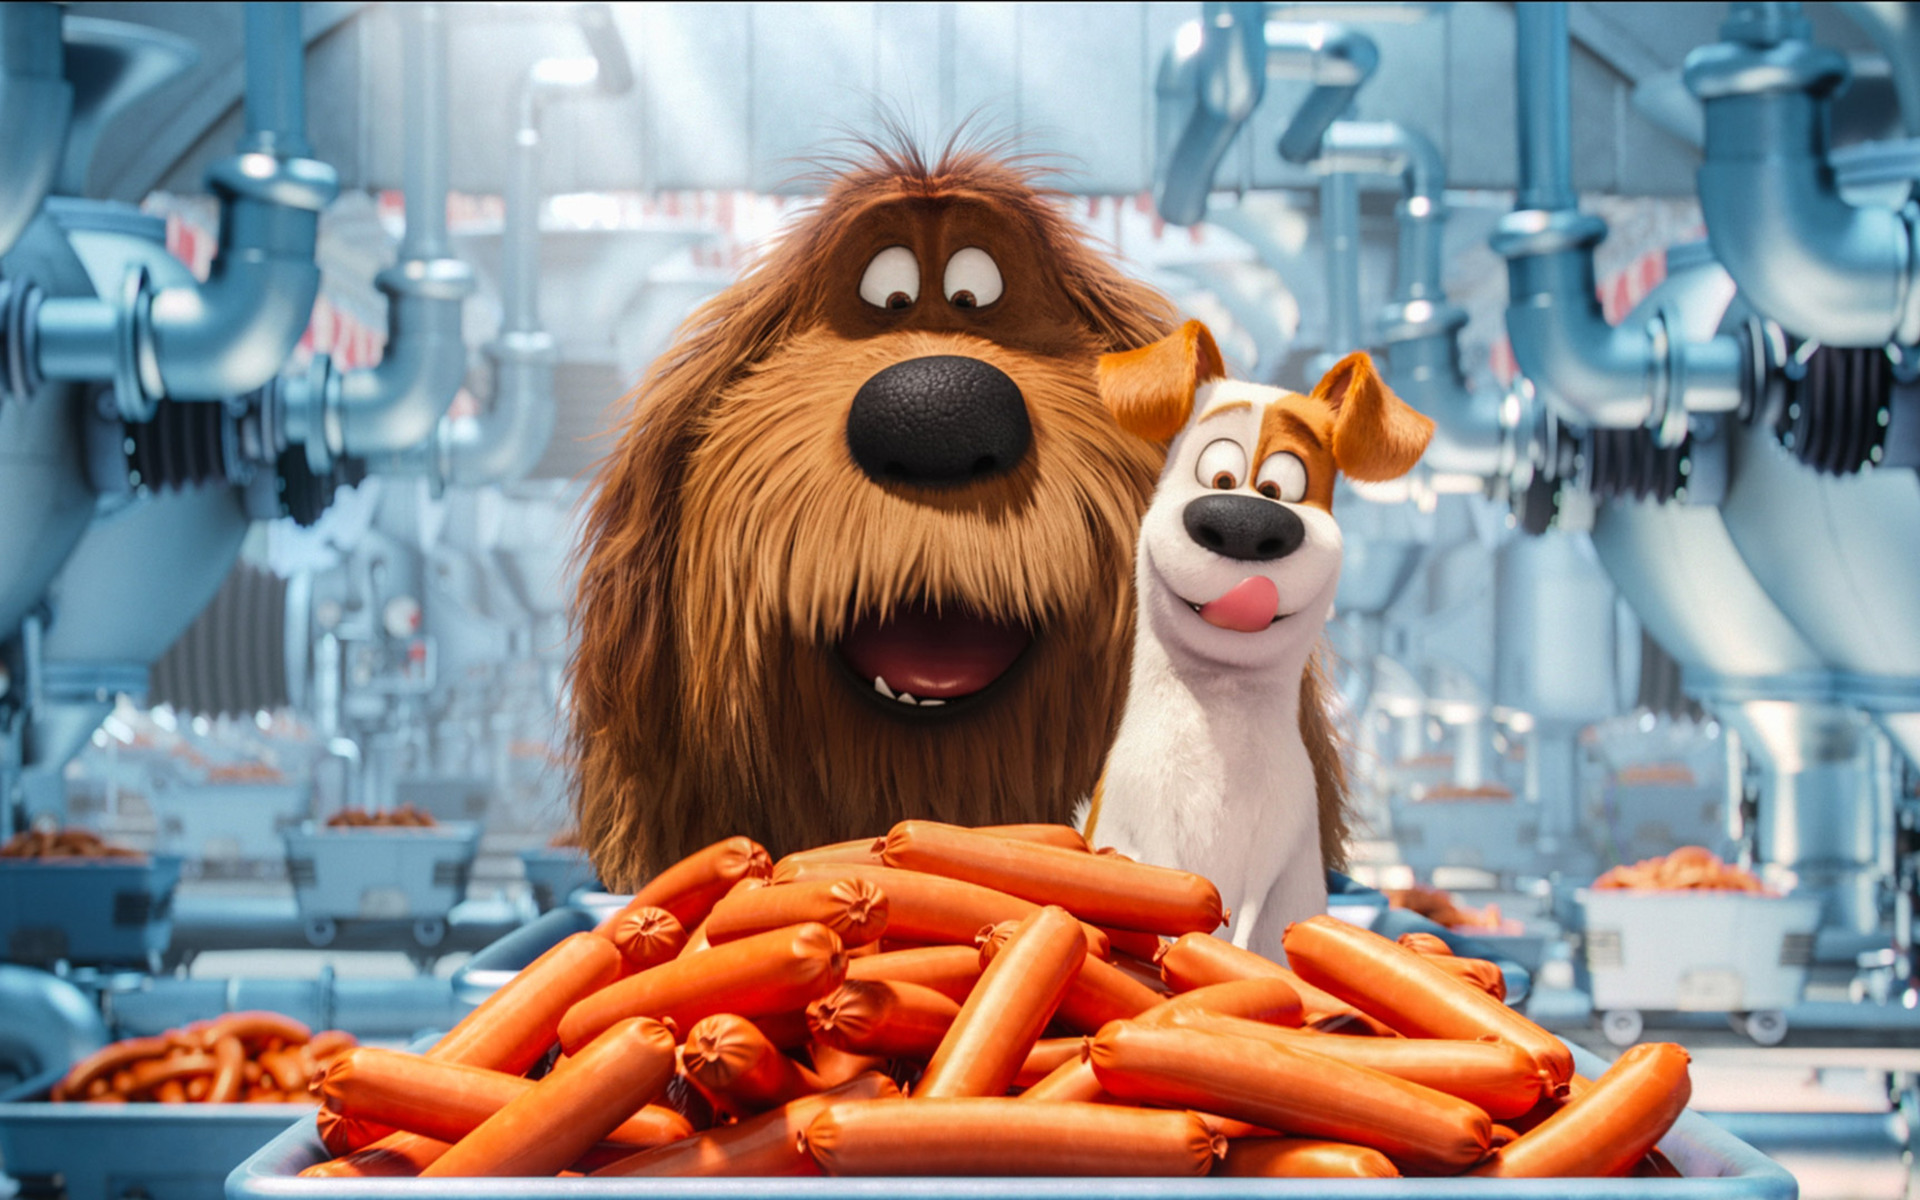 the-secrete-life-of-pets-animated-movie-on.jpg